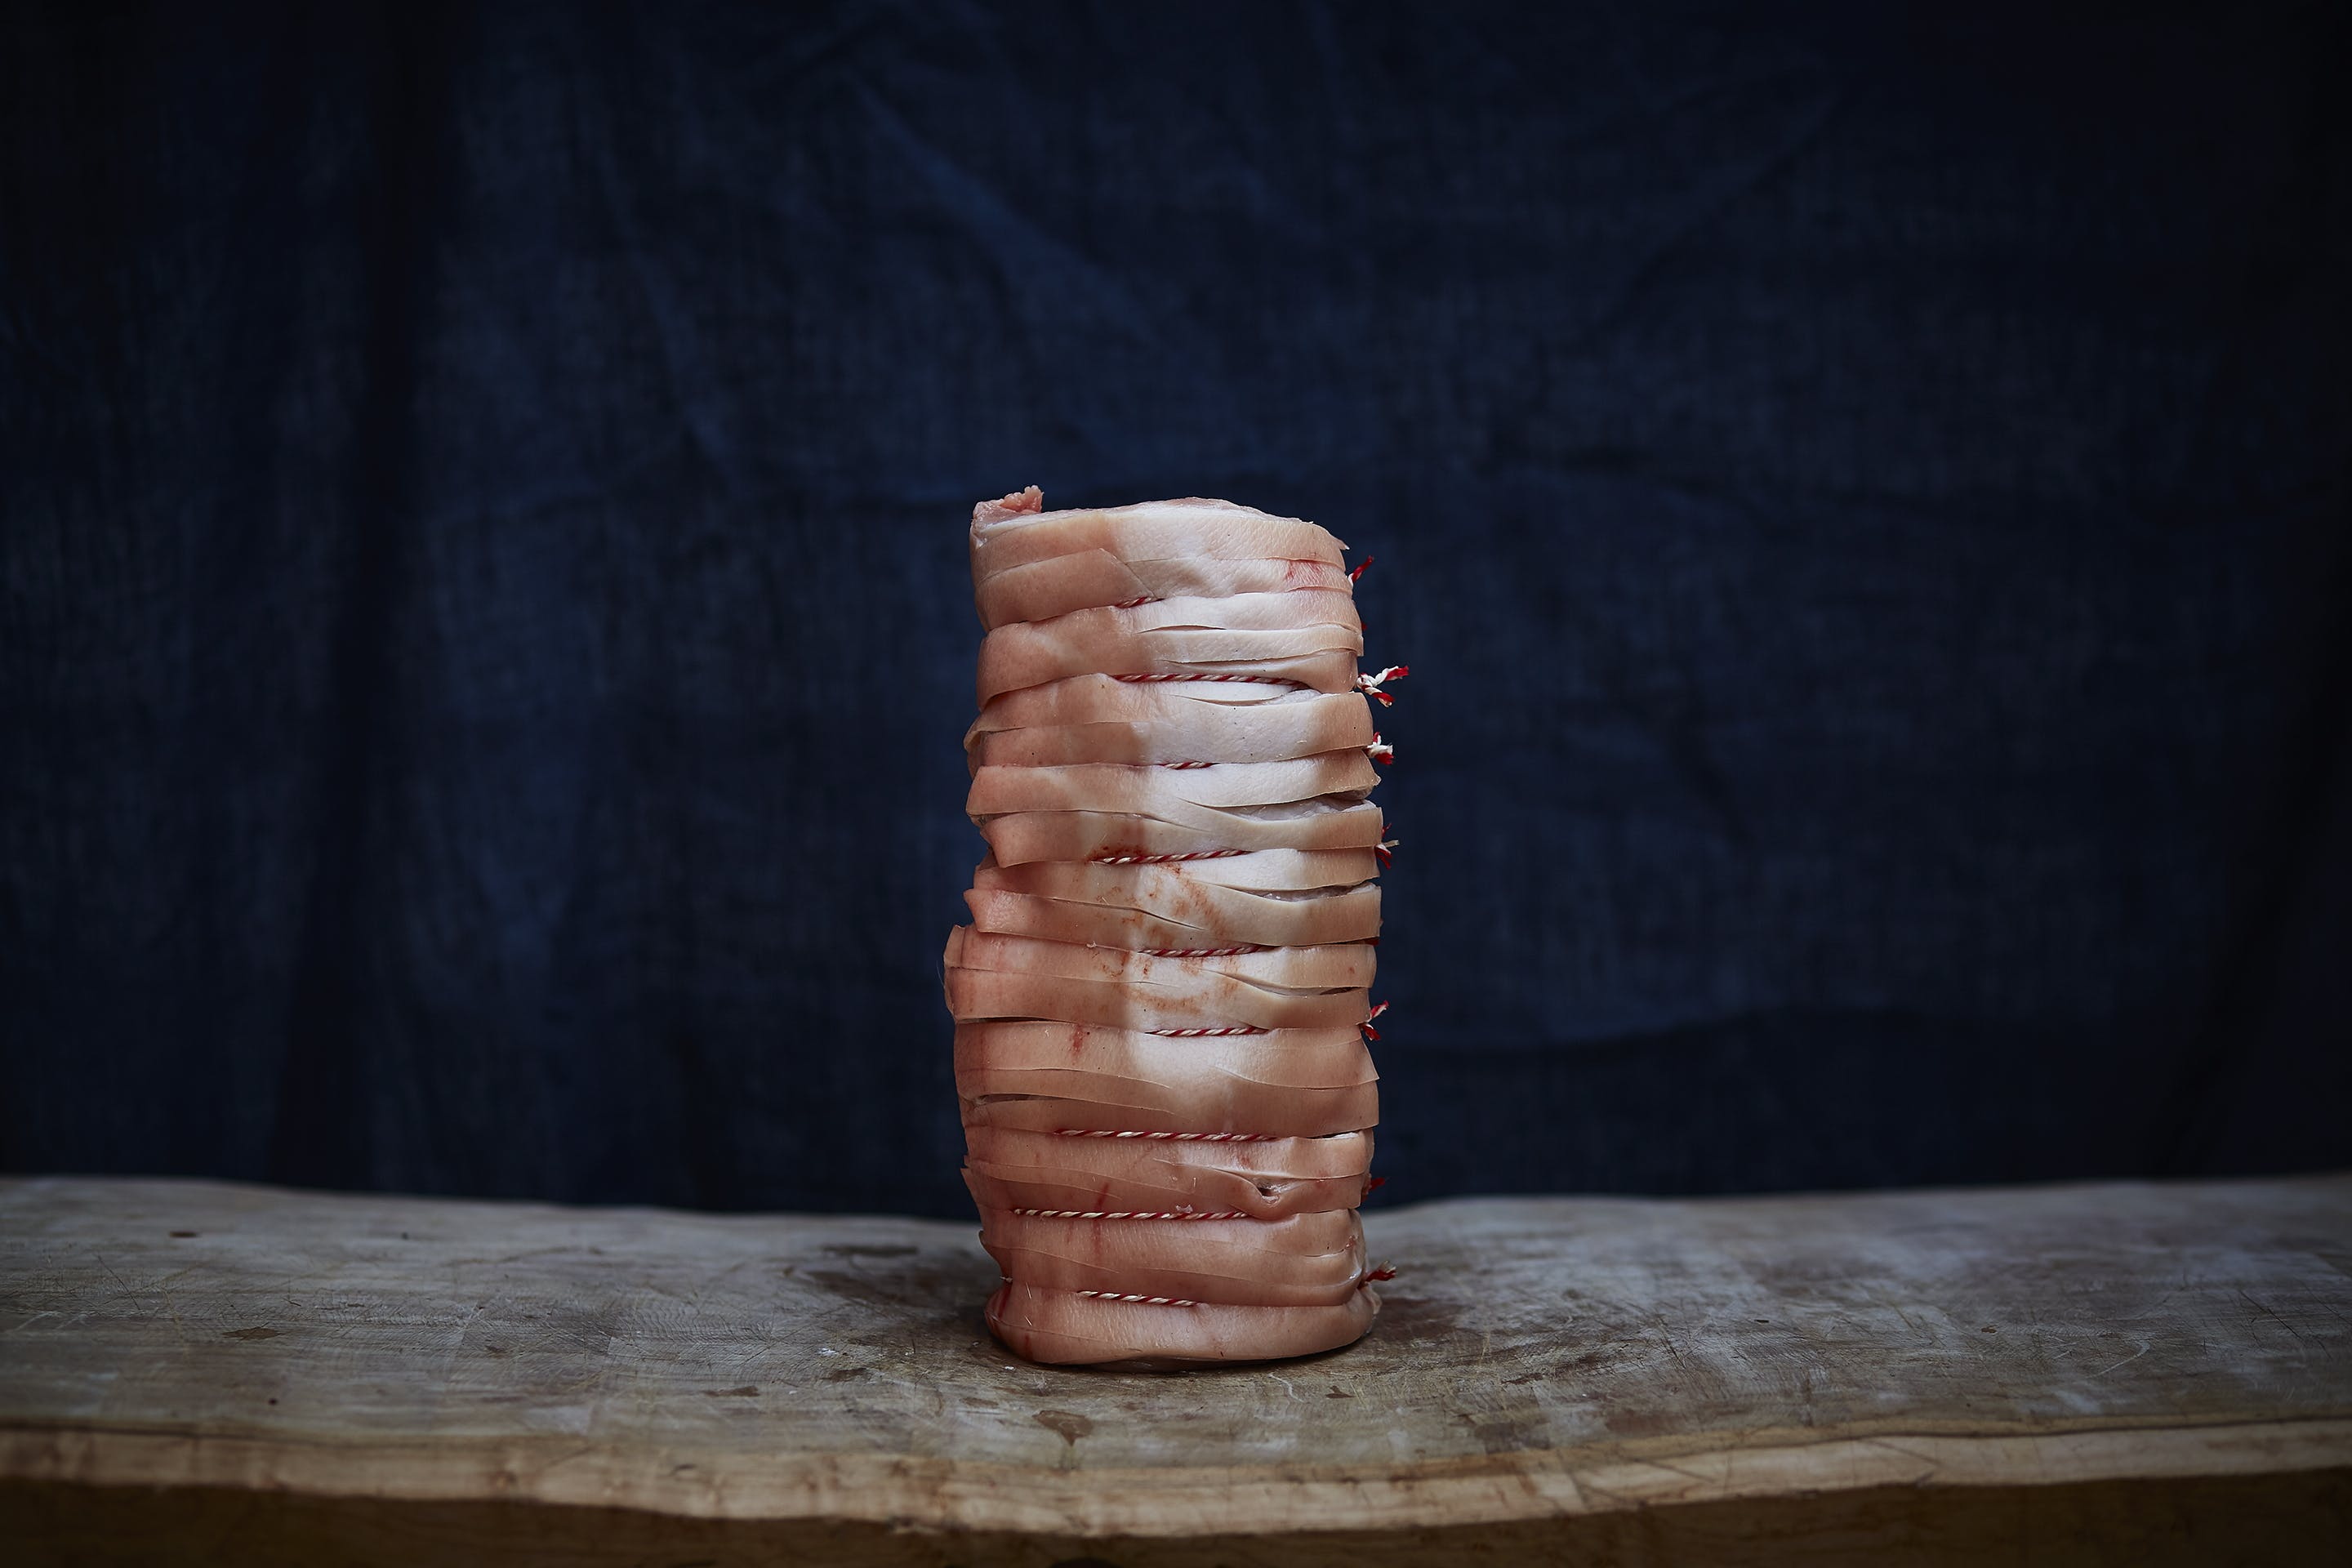 Saddleback Leg of pork (Boned and Rolled)